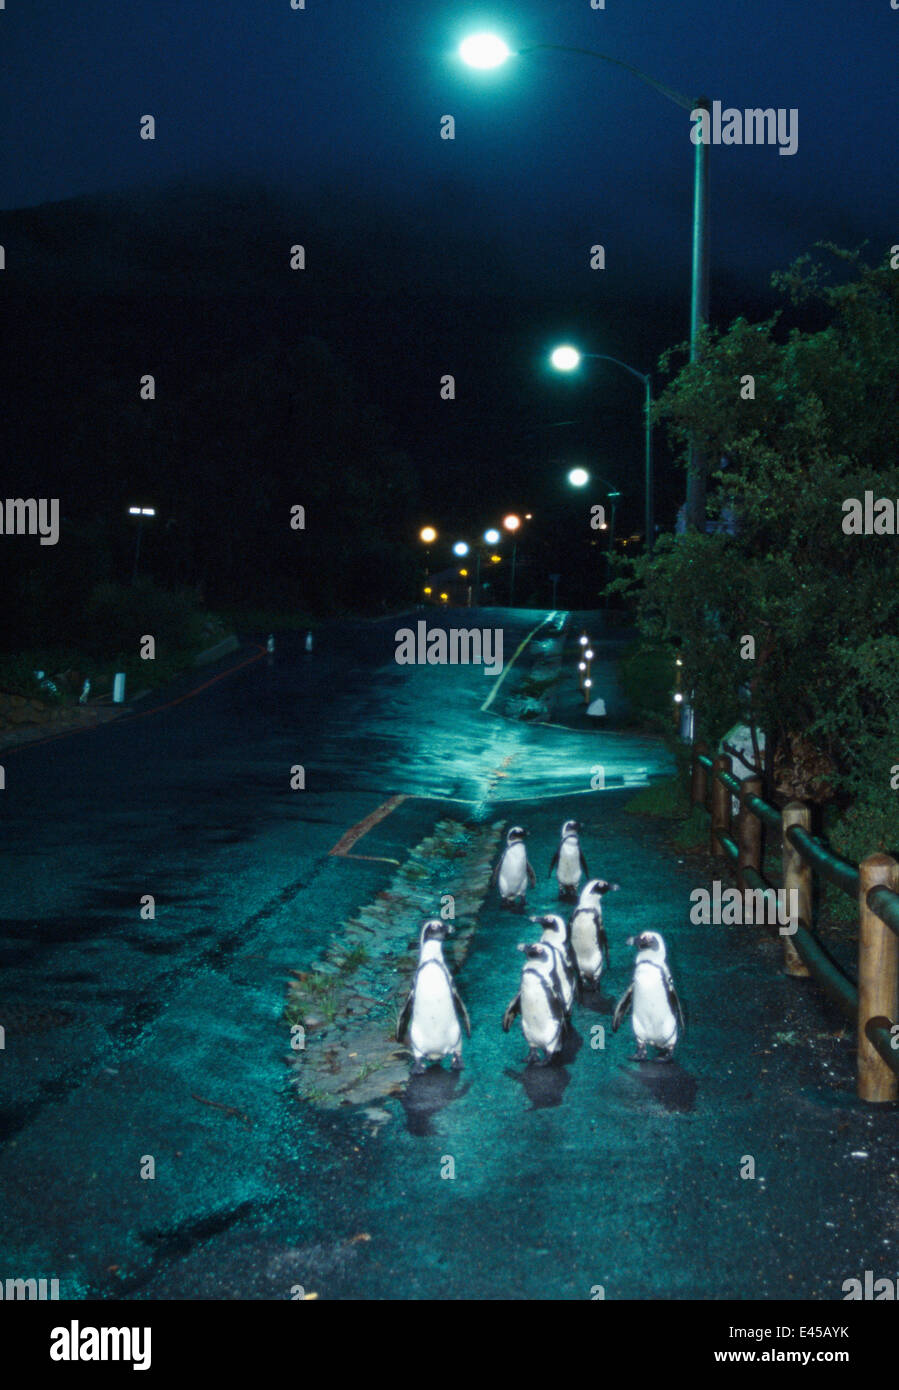 Black footed / Jackass penguins {Spheniscus demersus} walking along road at night with street lights, Boulders, South Africa Stock Photo